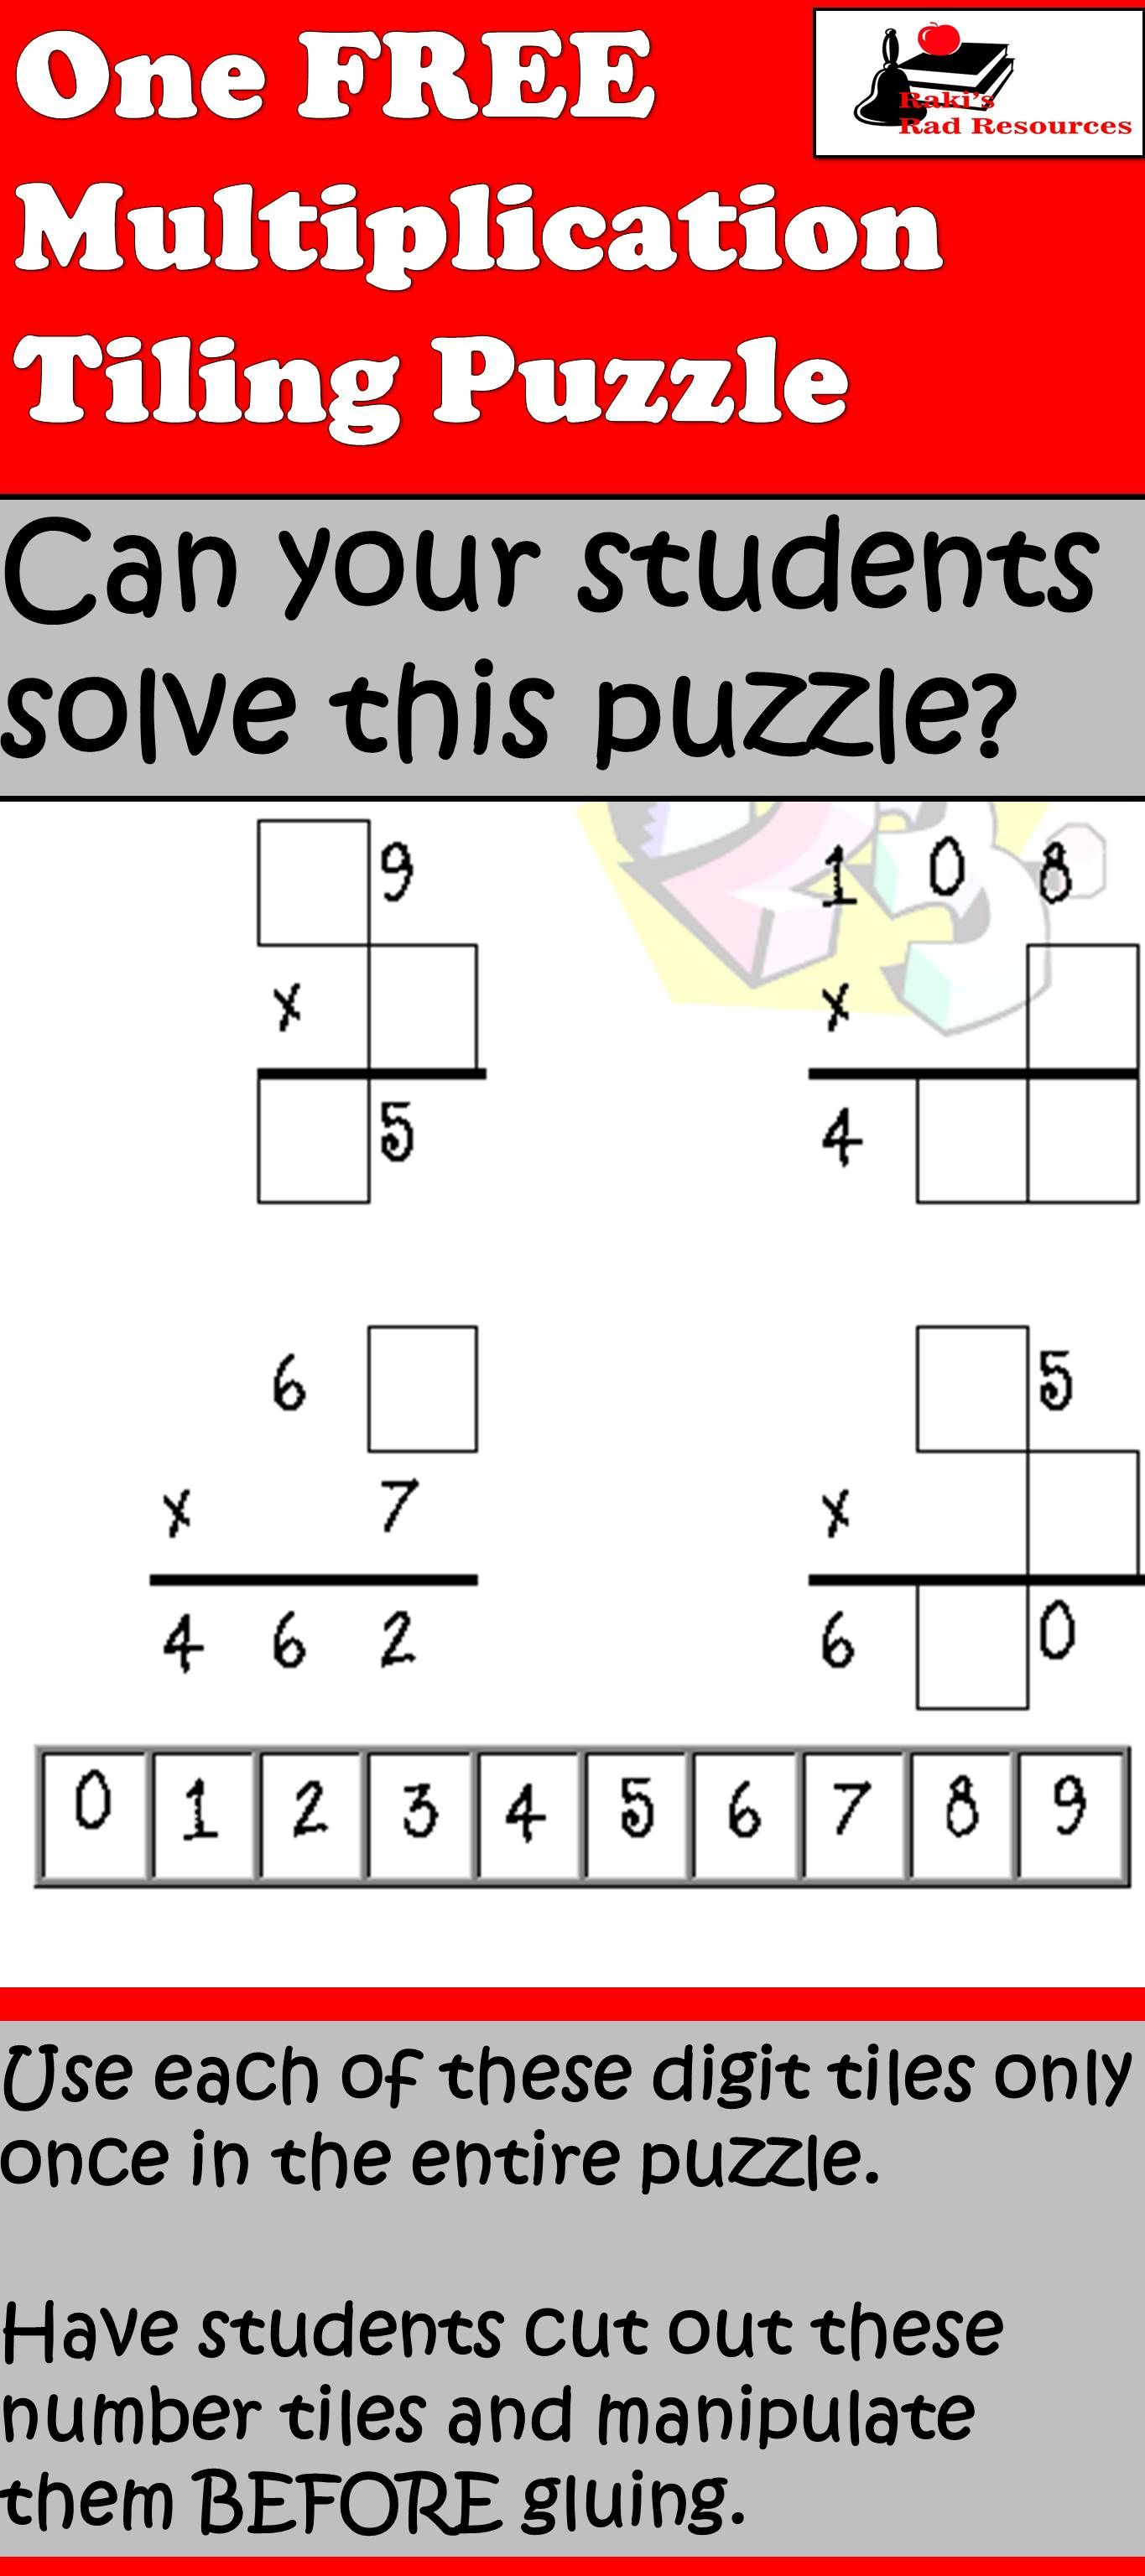 Free Multiplication Tiling Puzzle For 2 Or 3 Digit Numbers By 1 Use